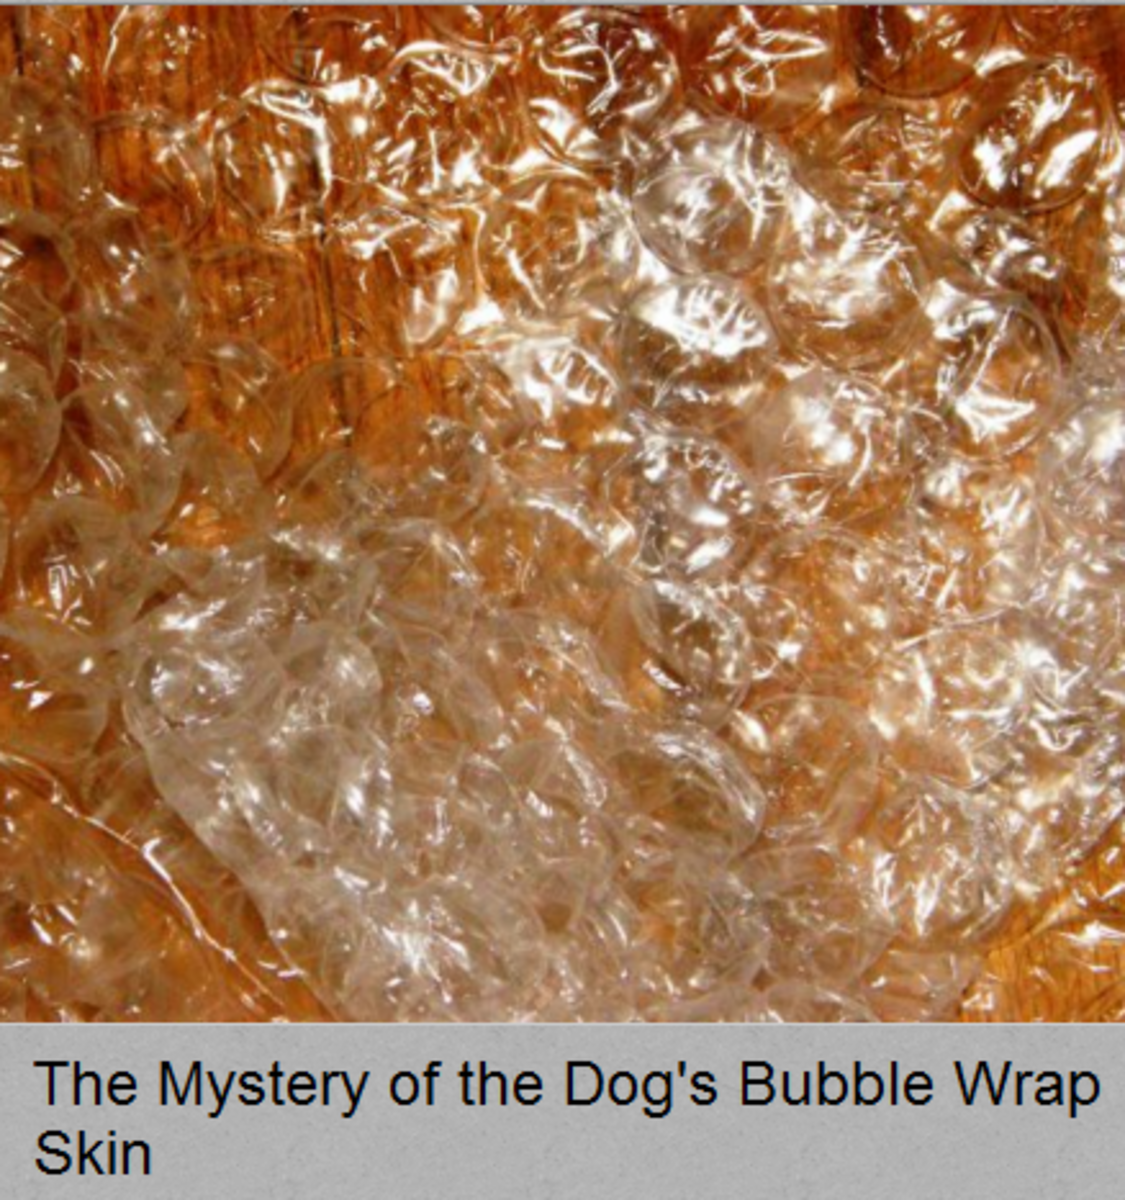 Dog skin feels like bubble wrap?